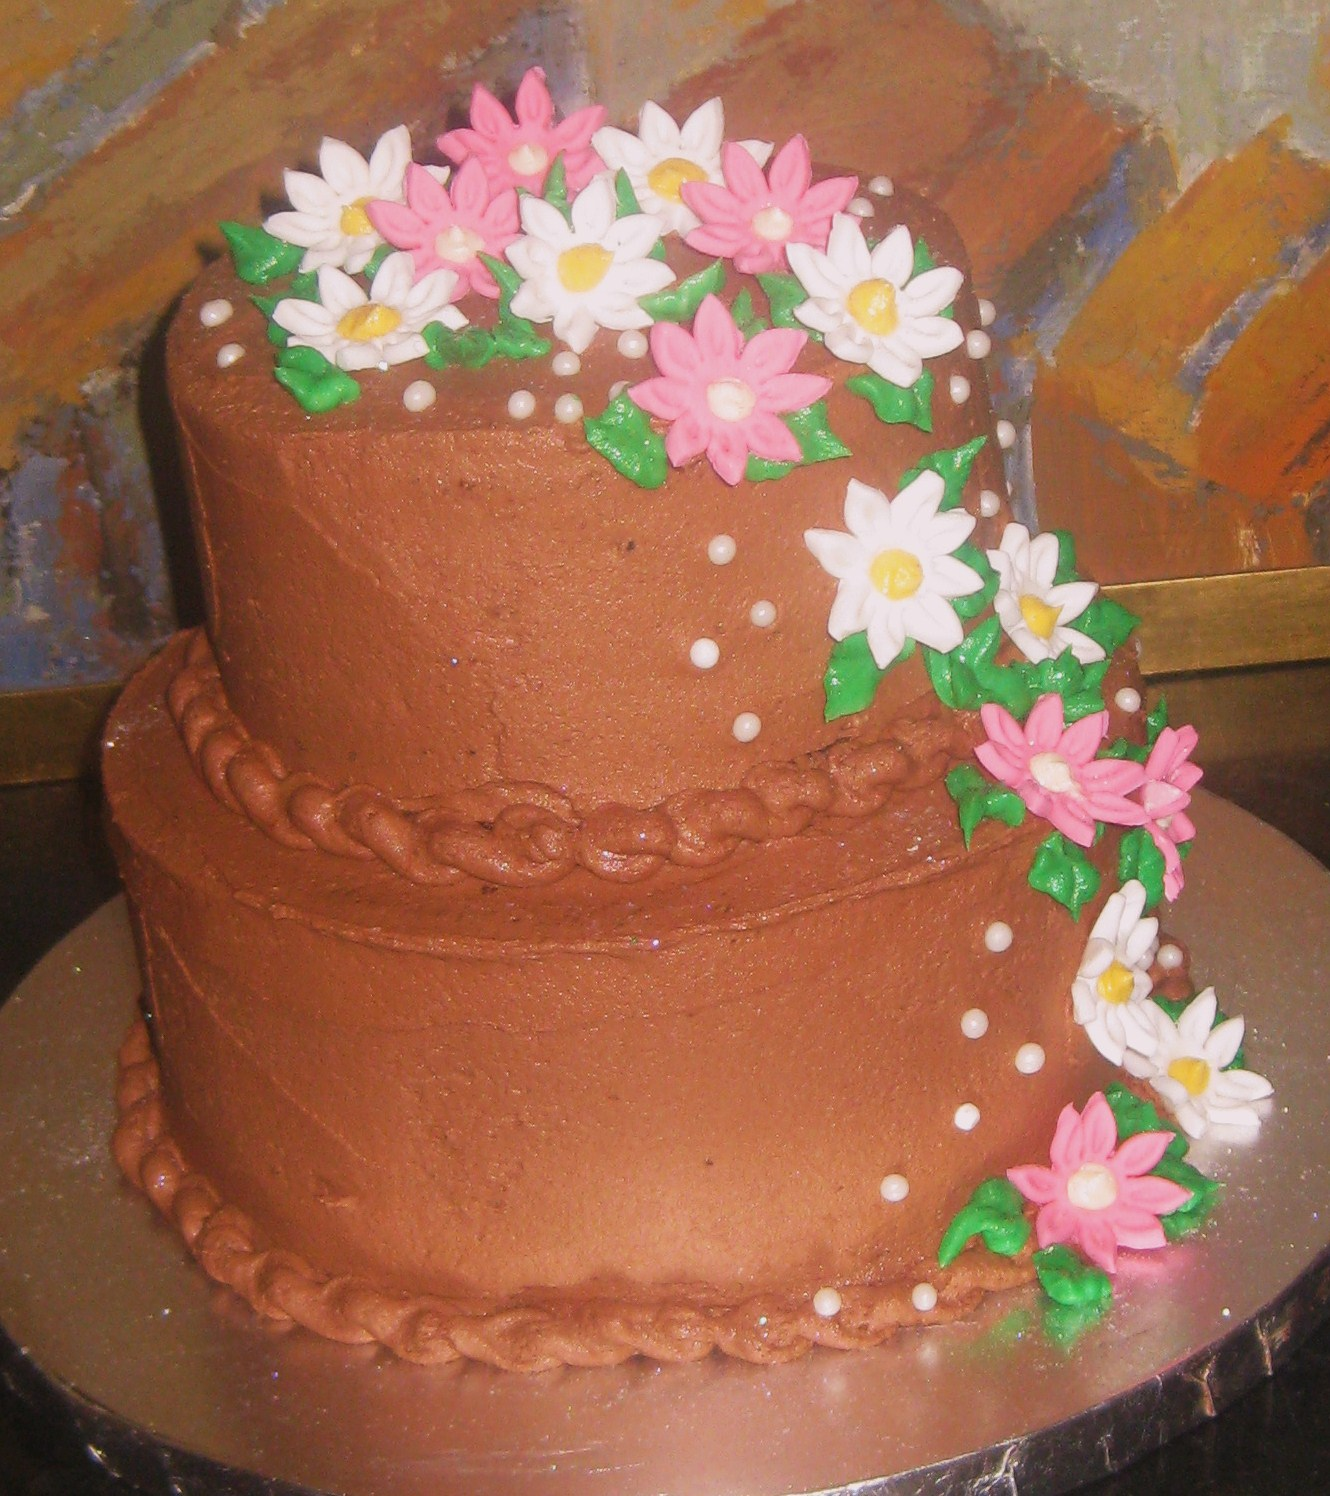 This Cake Was Custom Ordered For A Special Grandma Turning Young 80 Years Old She Loves Chocolate And Her Favorite Flower Is Daisy Colors Are